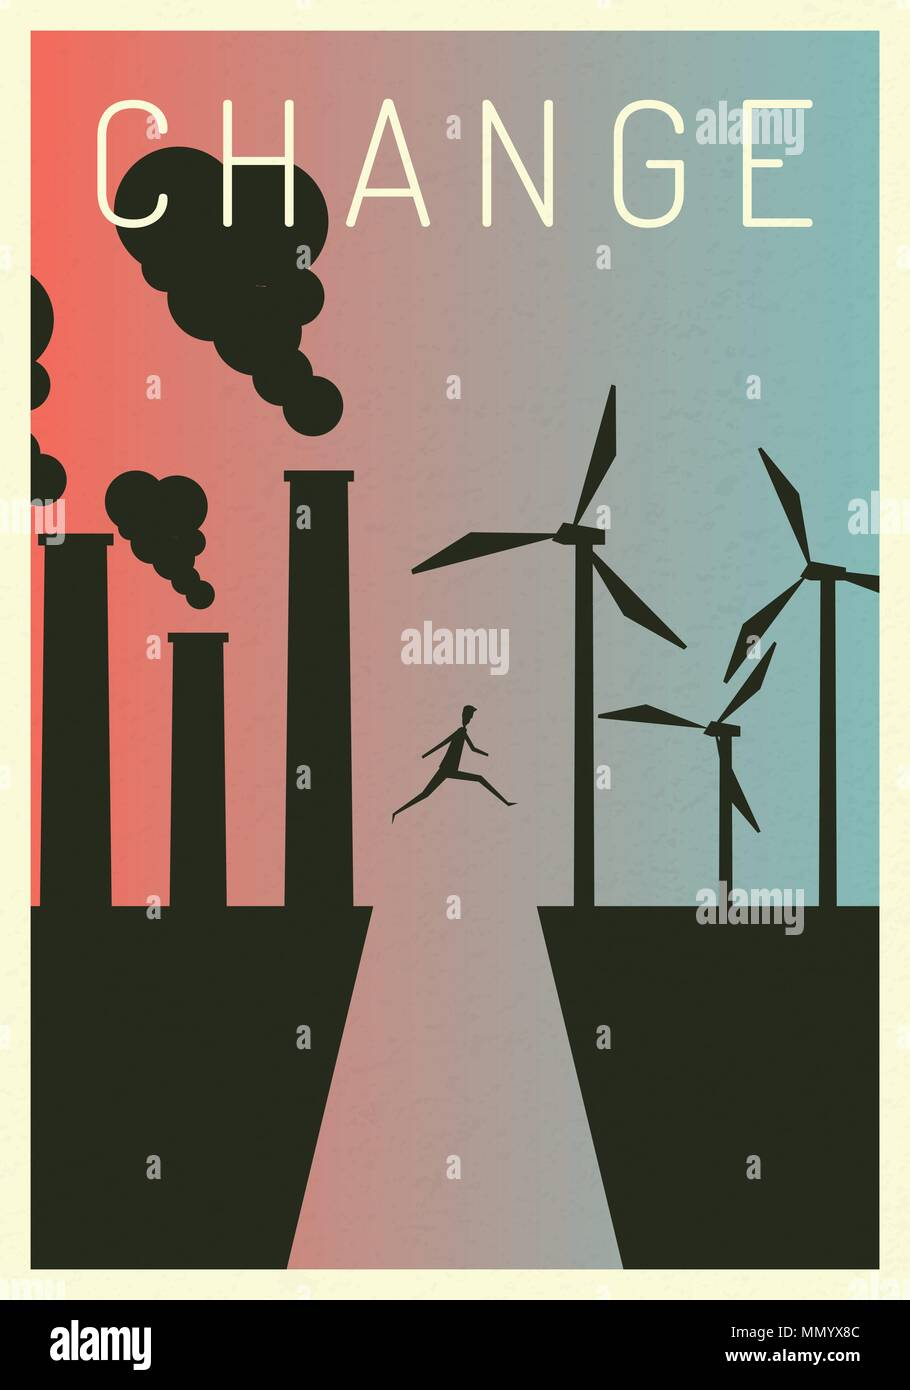 Vector Illustration Polluting Electricity Generation Production Powering A Generating Fossil Thermal Coal And Nuclear Power Plants Versus Clean Wind Turbines